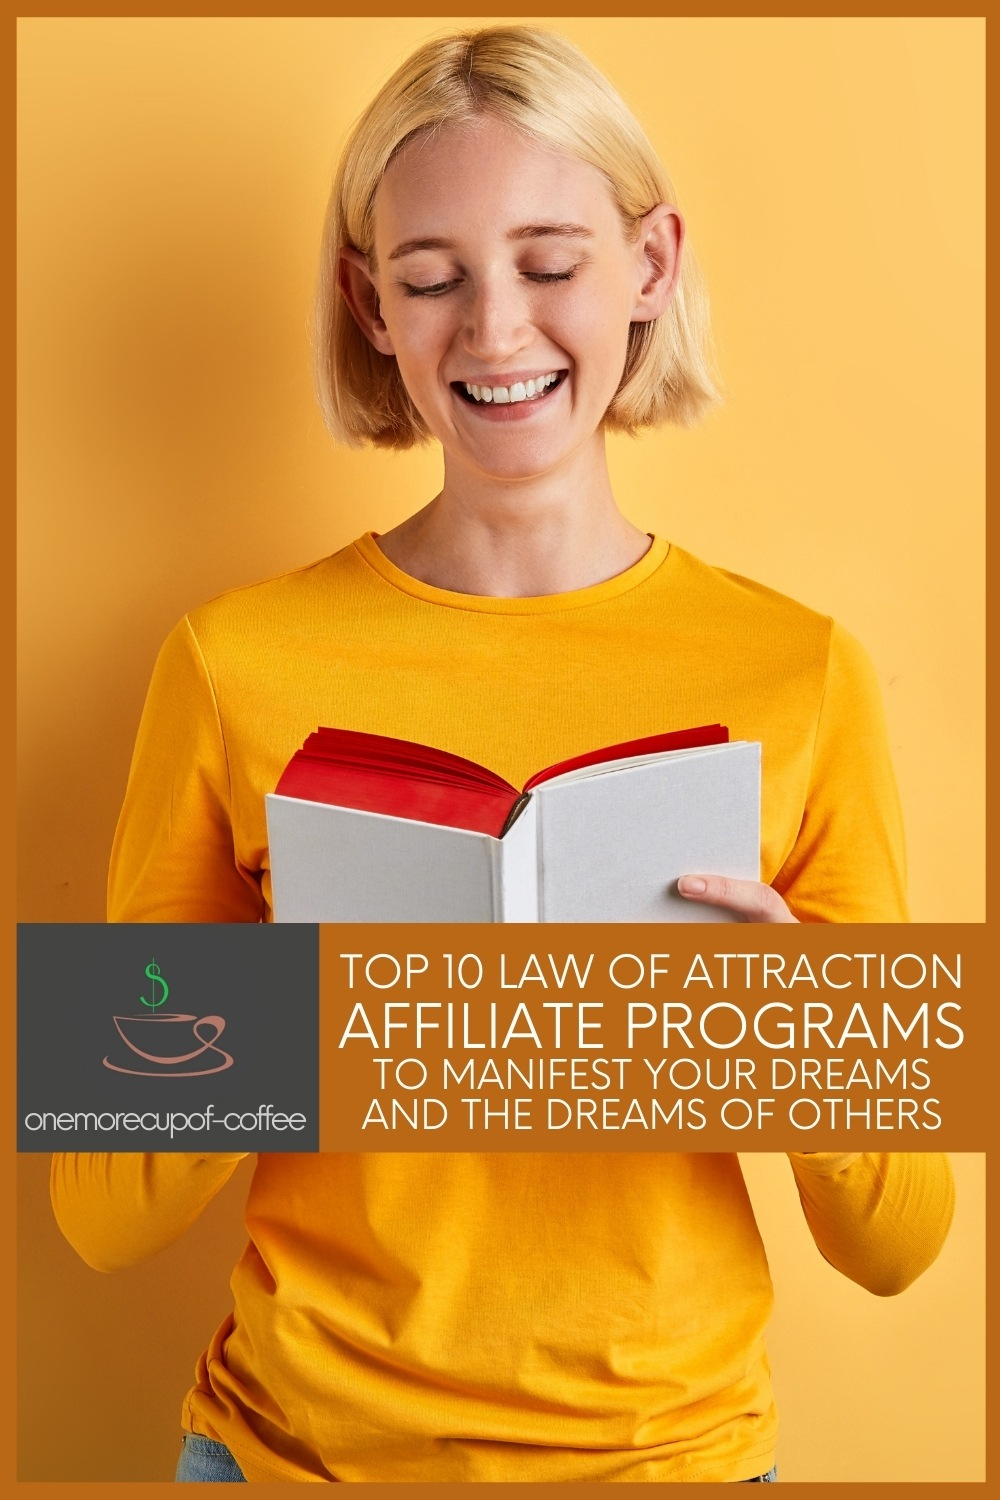 """short-haired smiling woman in yellow long-sleeved top looking down to a white book with red pages that she's holding with her two hands, while standing in front of a yellow  wall; with text overlay """"Top 10 Law Of Attraction Affiliate Programs To Manifest Your Dreams And The Dreams Of Others"""""""